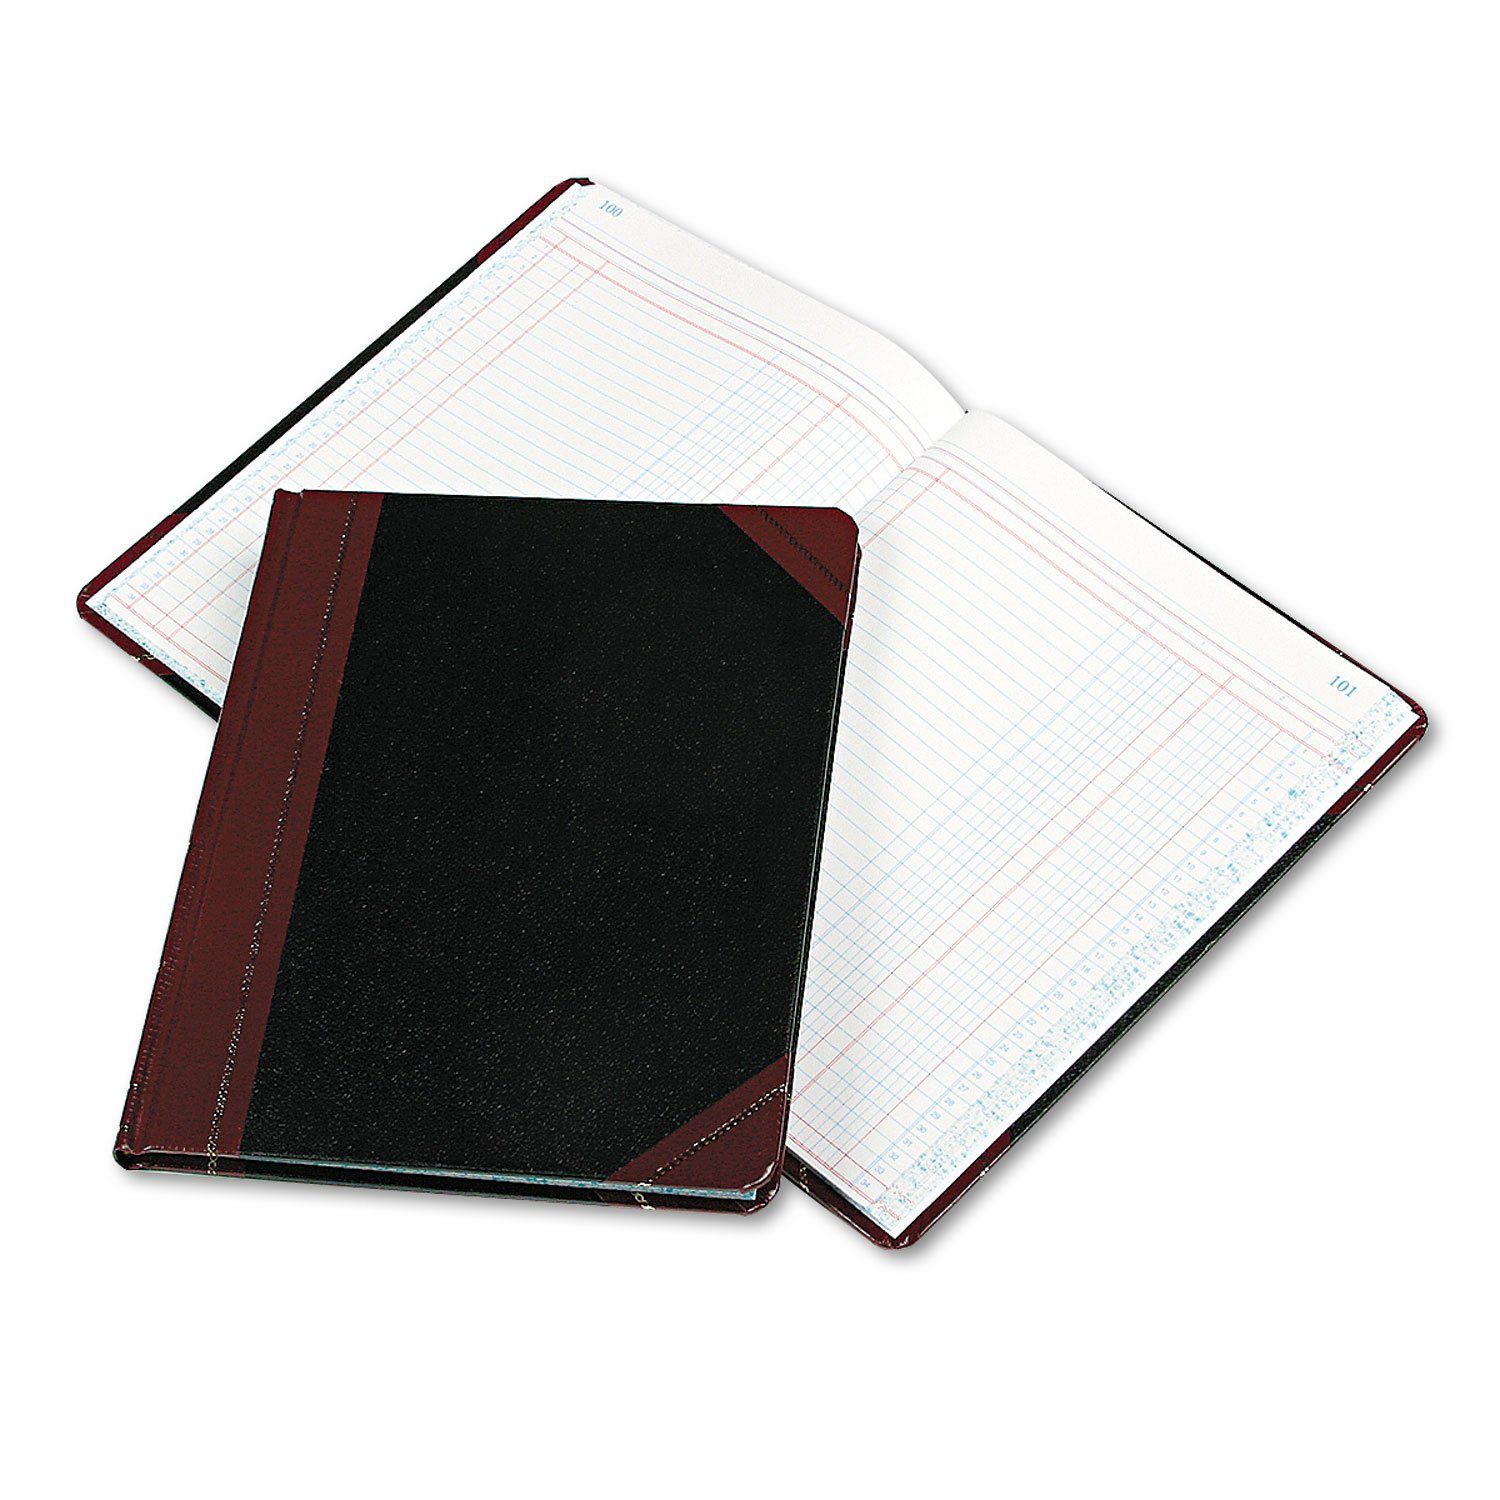 Boorum & Pease 211502 Columnar Accounting Book, Two Column, Black Cover, 150 Pages, 8 1/8 x 10 3/8